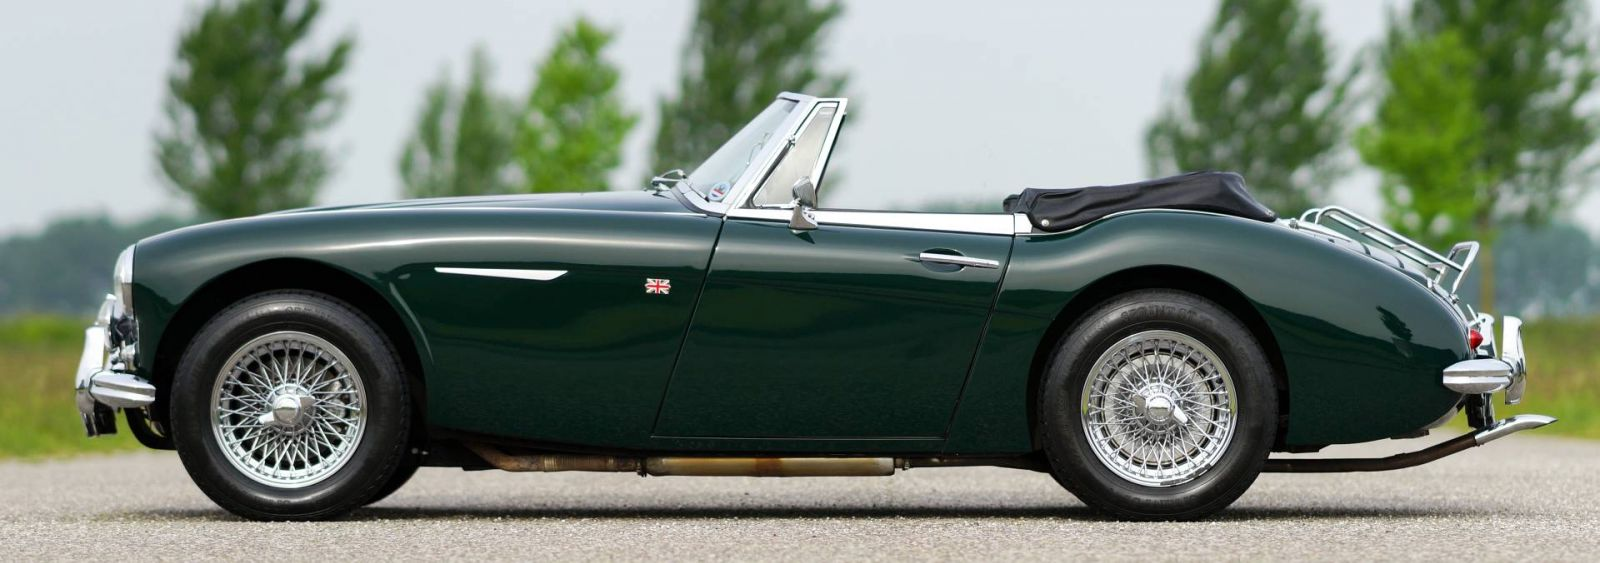 austin healey 3000 mk 2a 1962 welcome to classicargarage. Black Bedroom Furniture Sets. Home Design Ideas